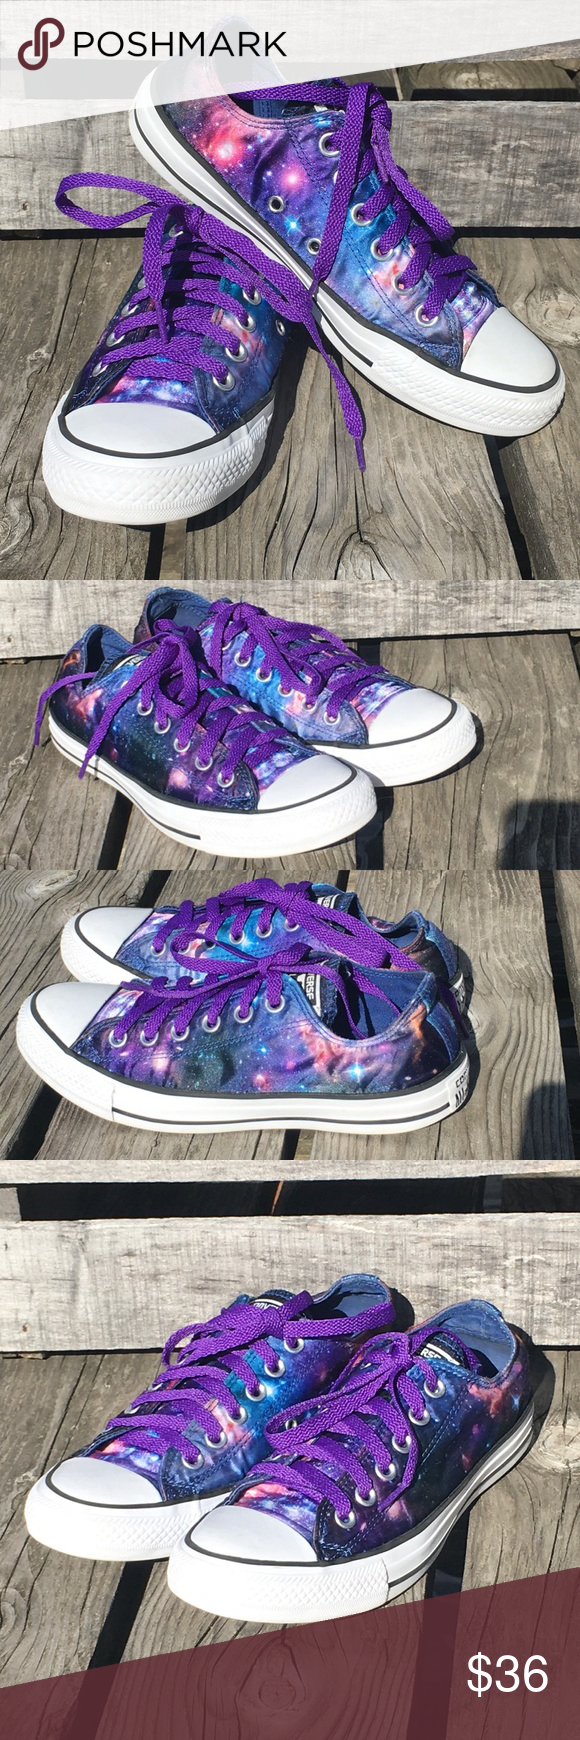 c765ec5e94 Satin Galaxy Converse! New Laces! EUC! Beautiful and most wanted Converse!  Satin galaxy print. New purple laces - can be changed if desired.